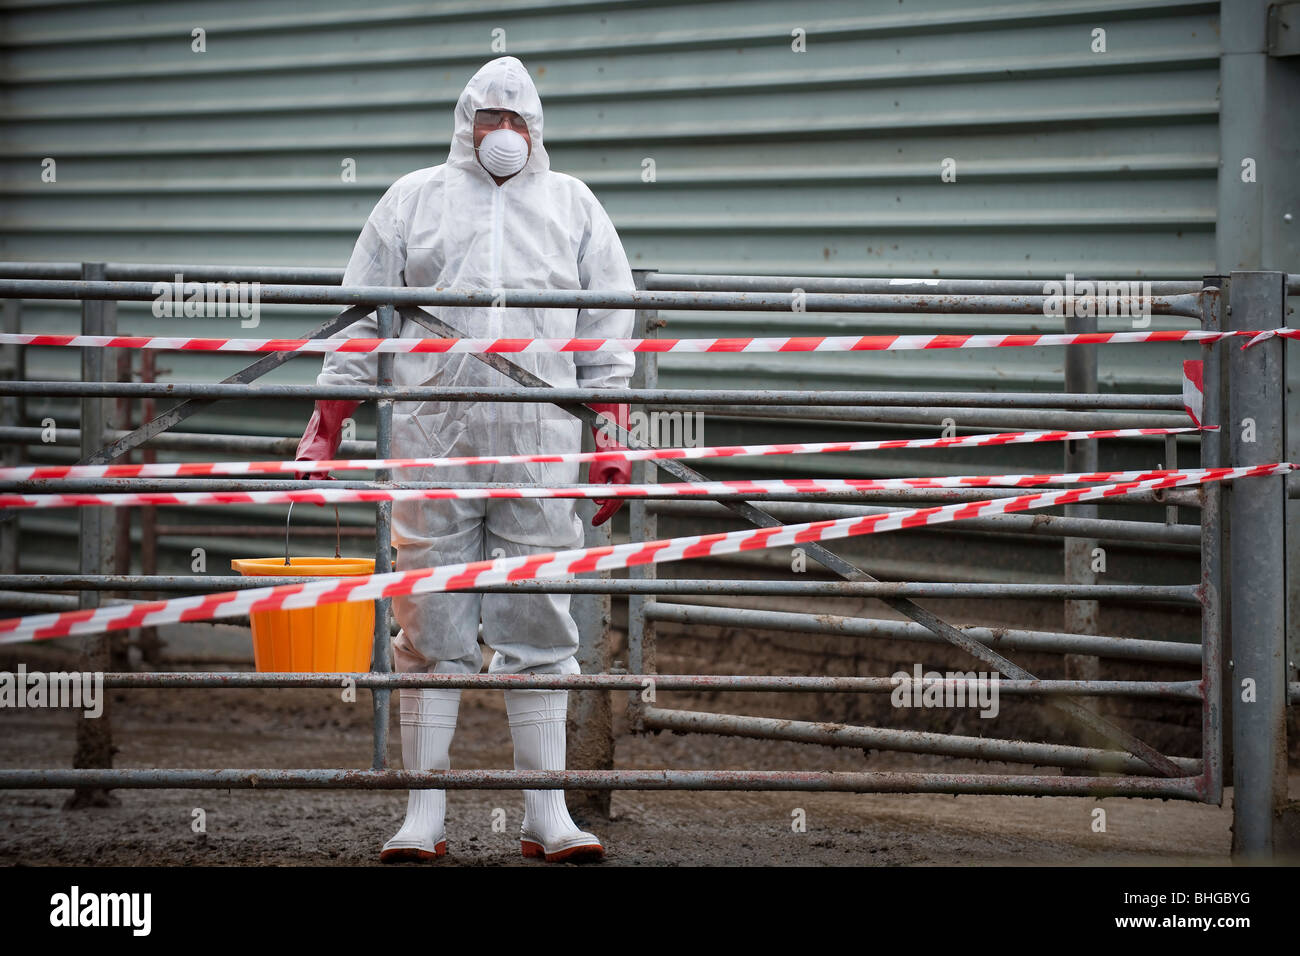 bio hazard worker on farm - Stock Image